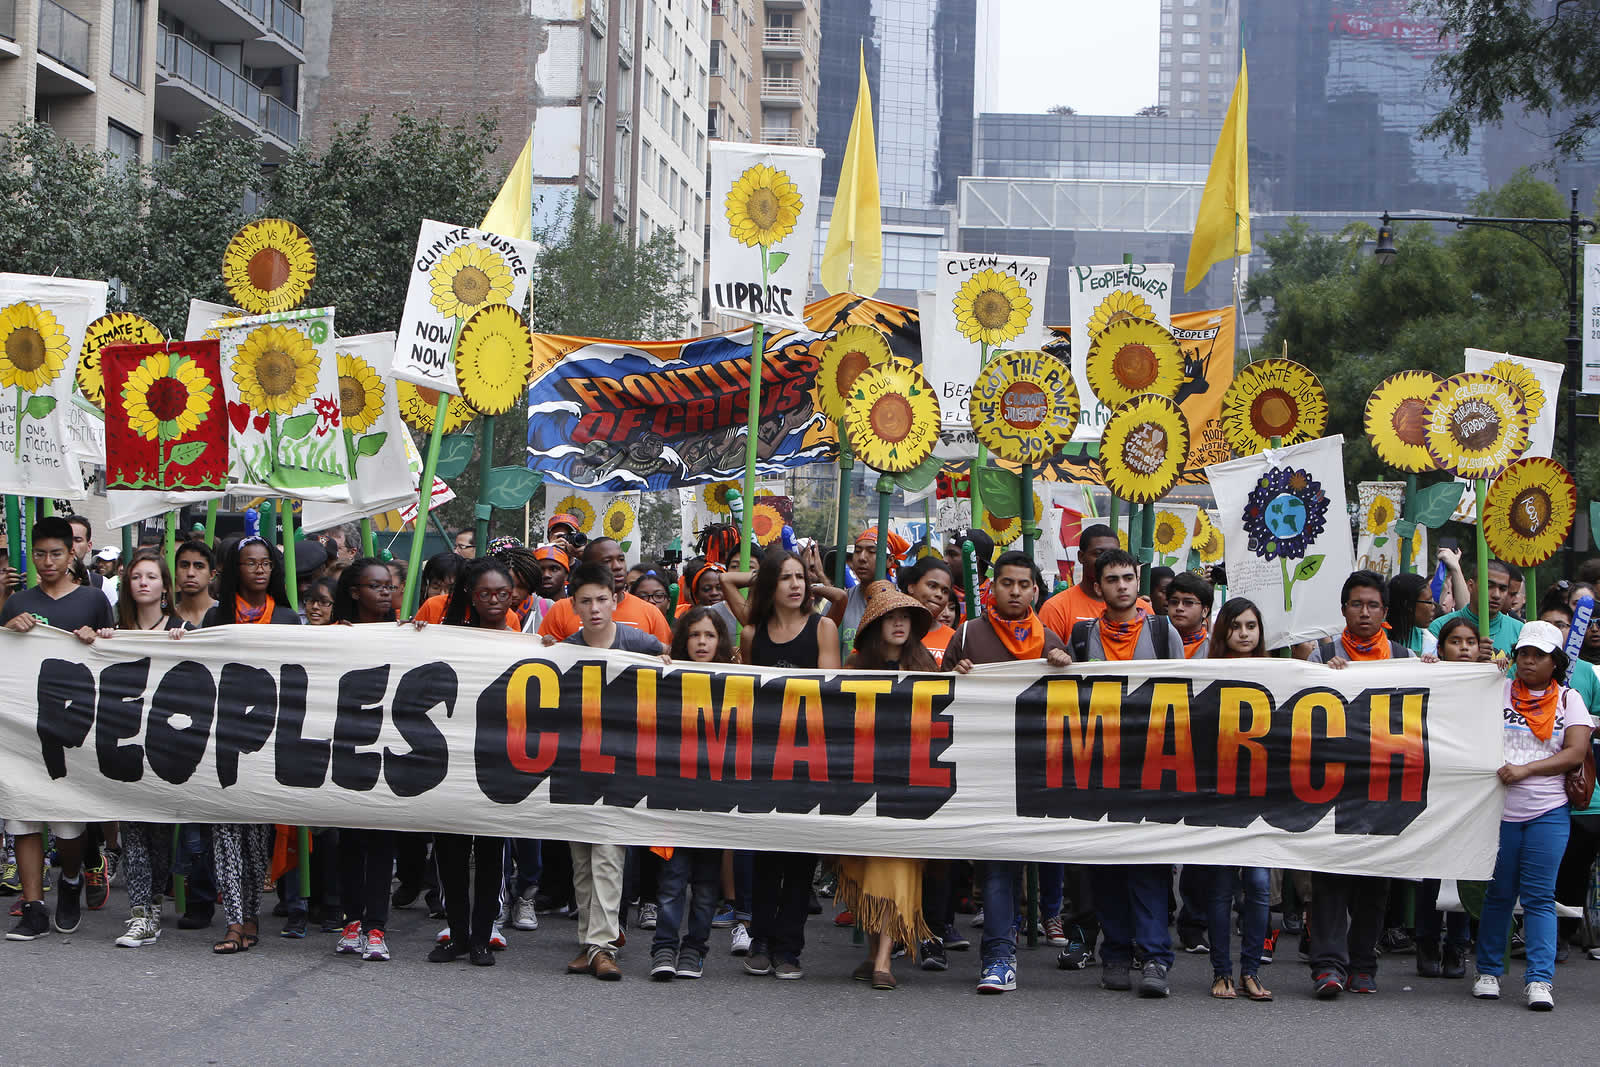 Demand a People's Climate Summit